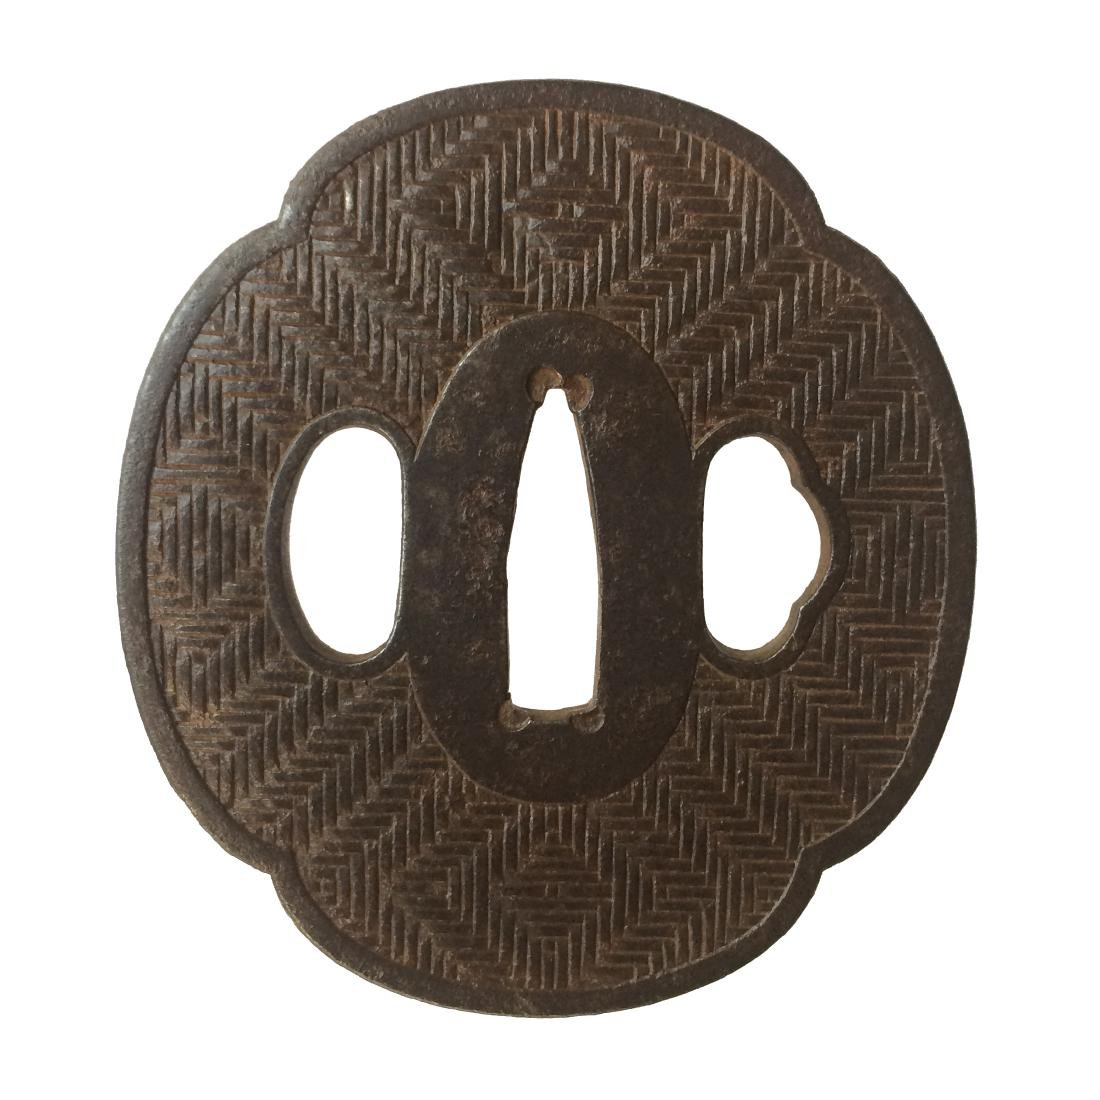 Iron tsuba with woven basket pattern